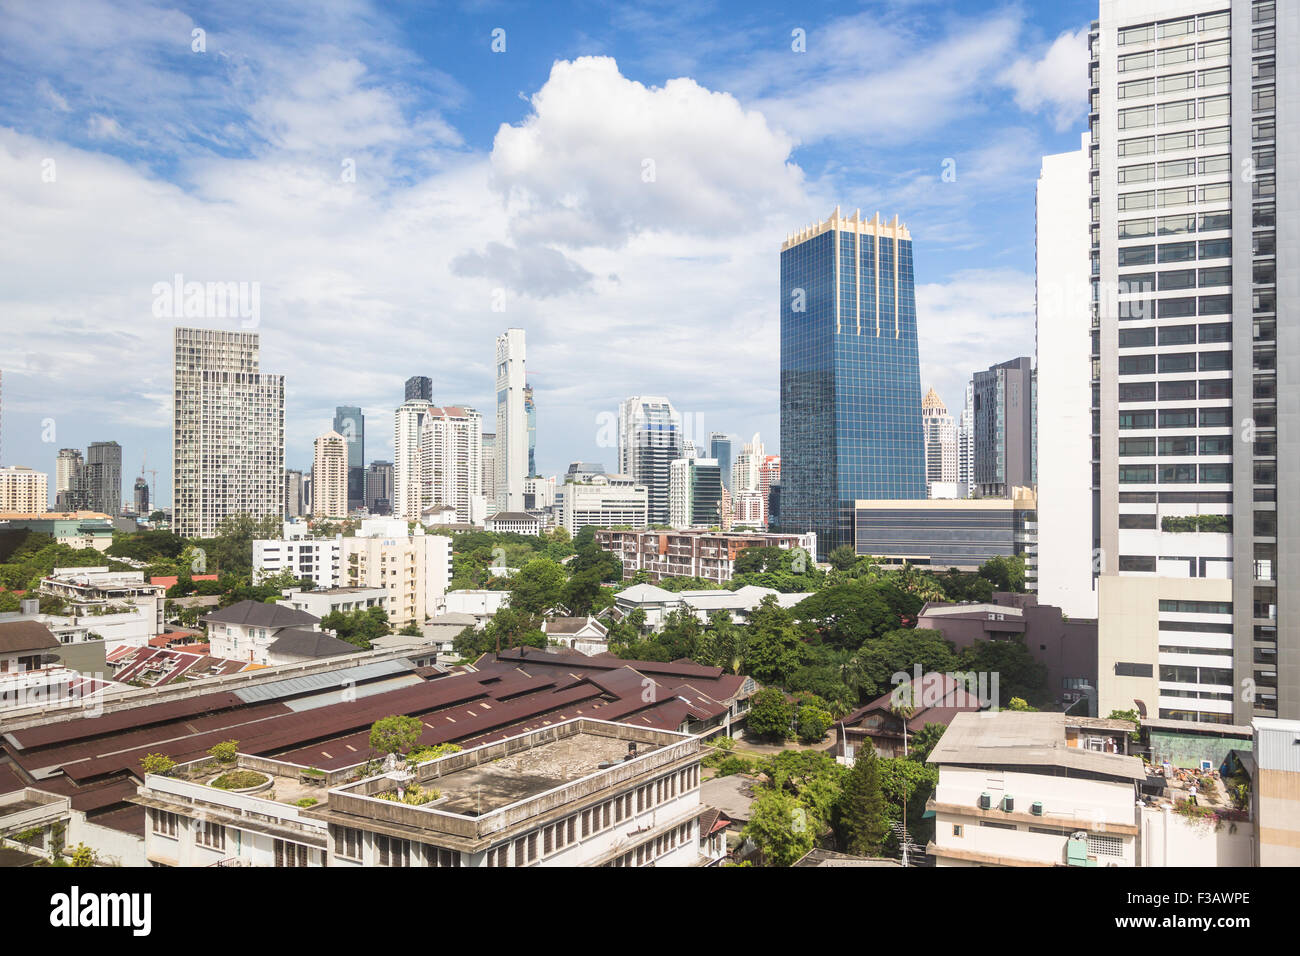 Bangkok modern skyline around the Sathorn/Silom business district, which contains a lots of luxury hotels and office - Stock Image